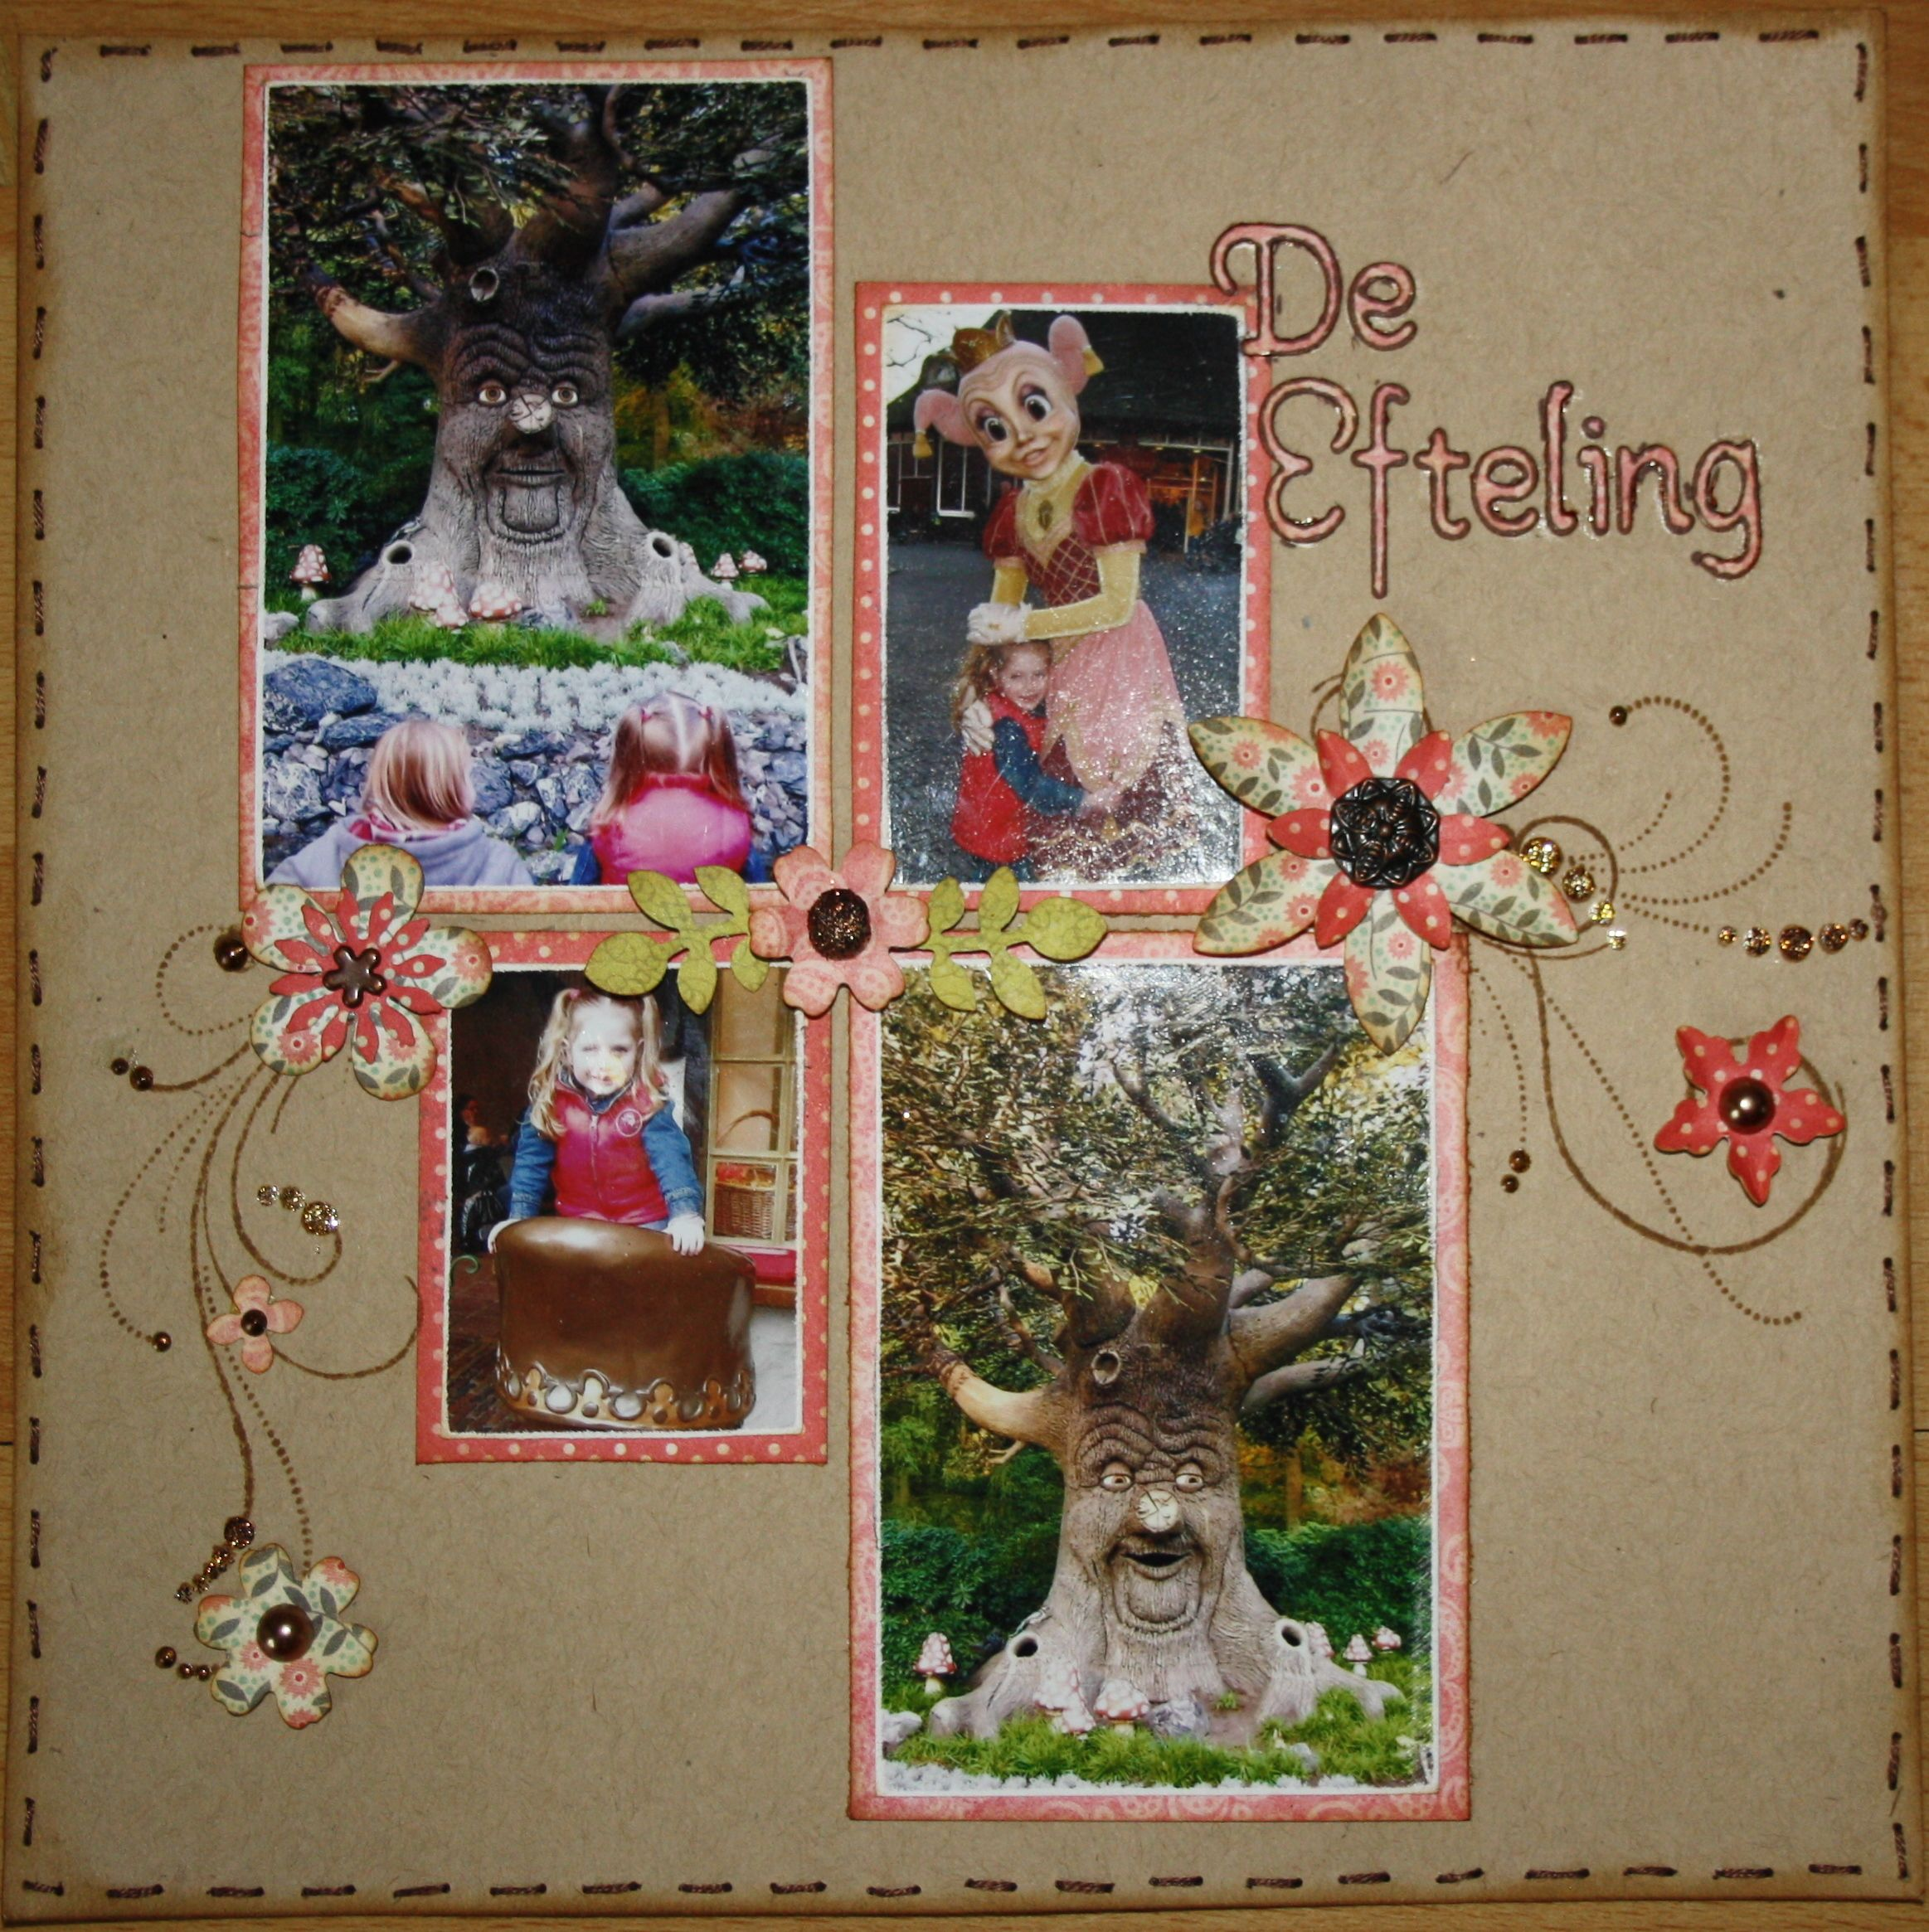 A layout with pictures from the Efteling.